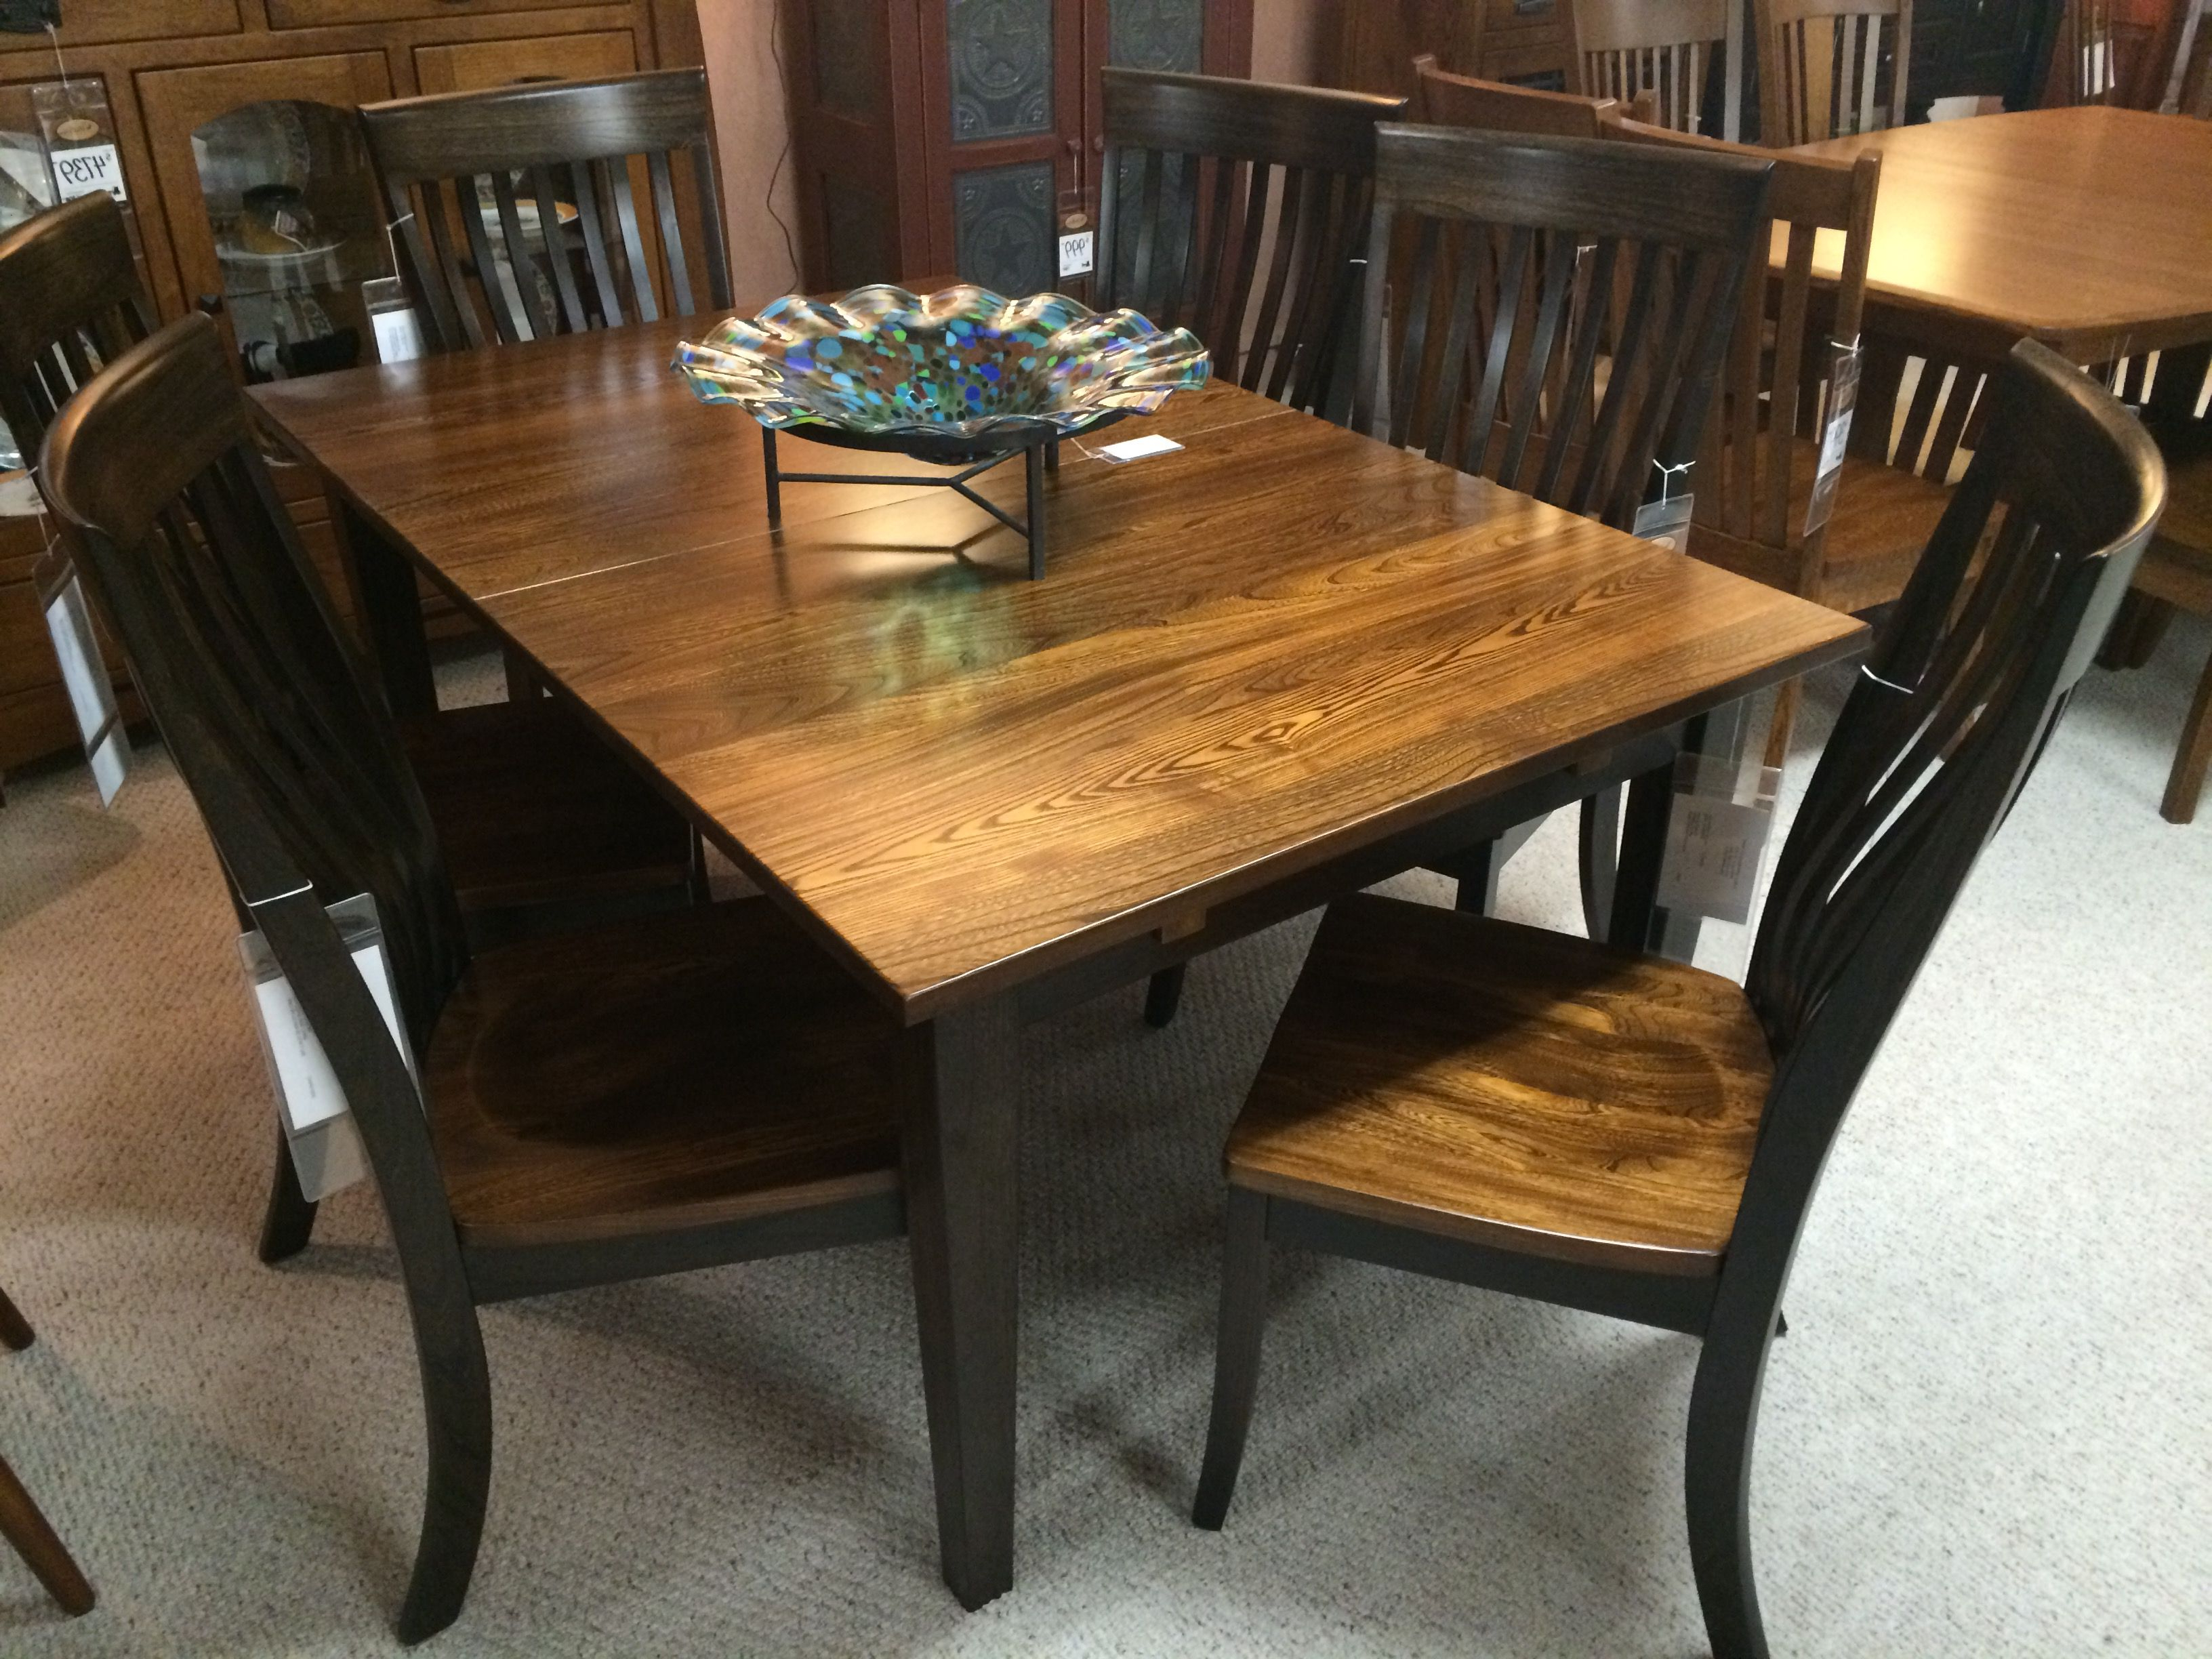 Emmeline 5 Piece Breakfast Nook Dining Sets in Well-liked Gorgeous Elm Amish Made Dining Room Set!